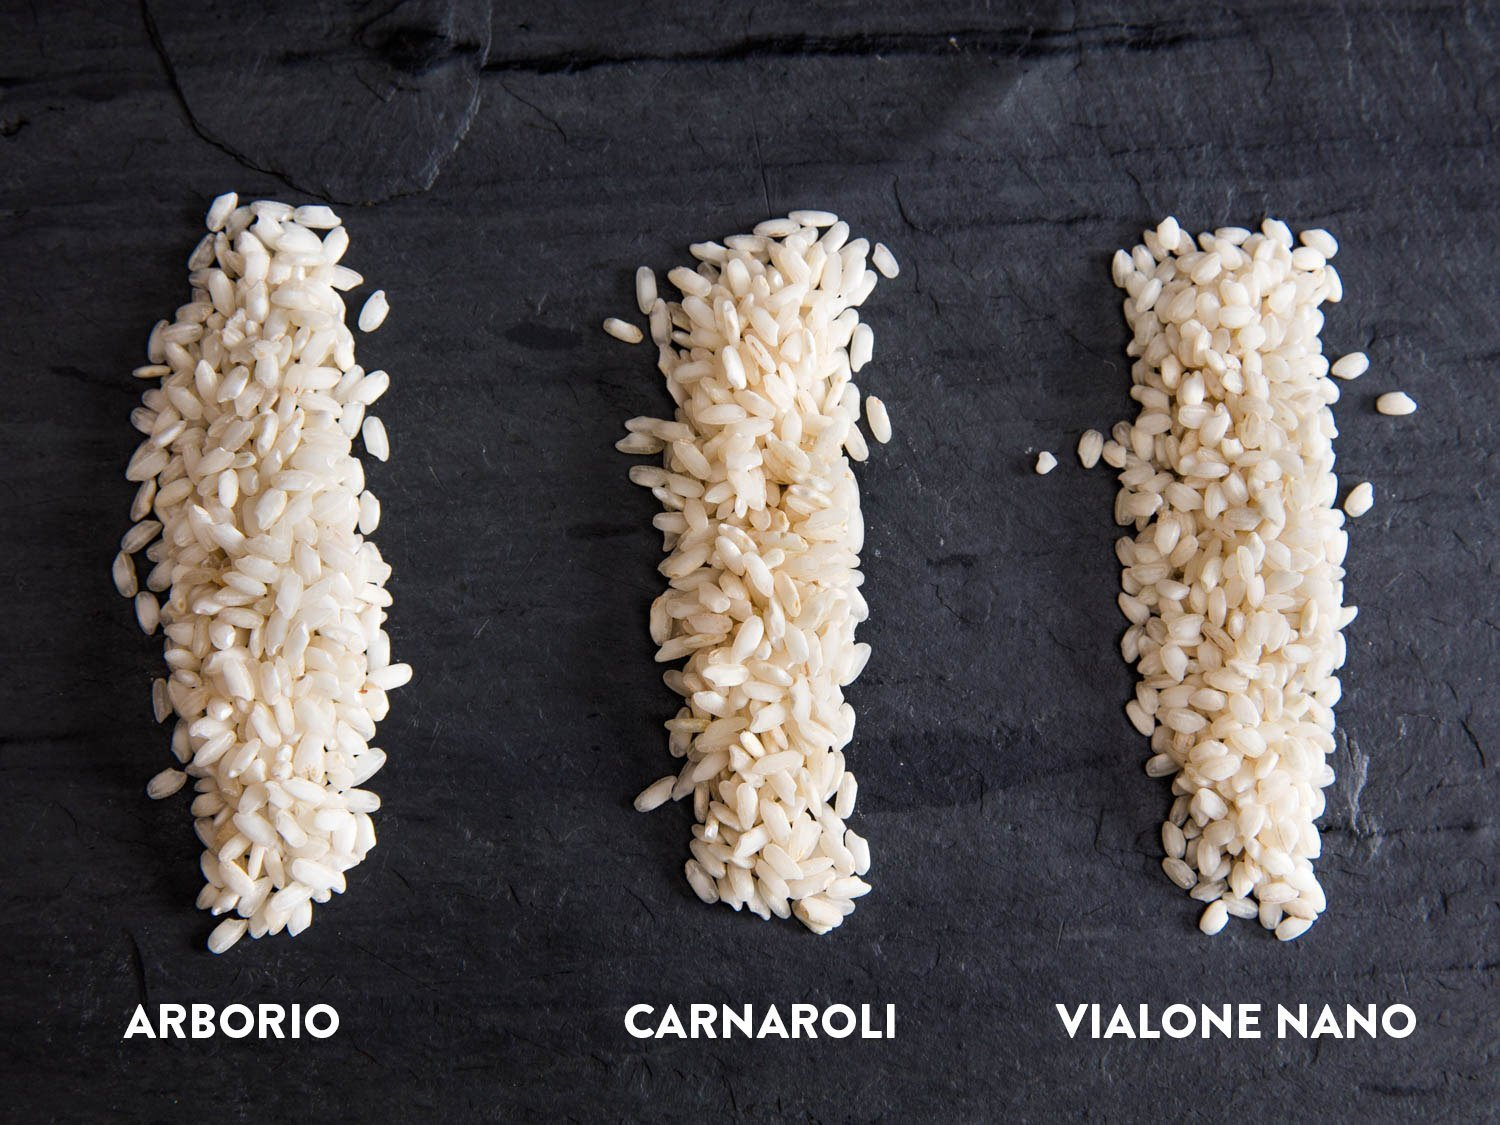 Aged Gourmet Carnaroli Risotto Rice - Real Aged Carnaroli Classico - Produced and Imported From Italy - by Serendipy Life (2.3 Lb)